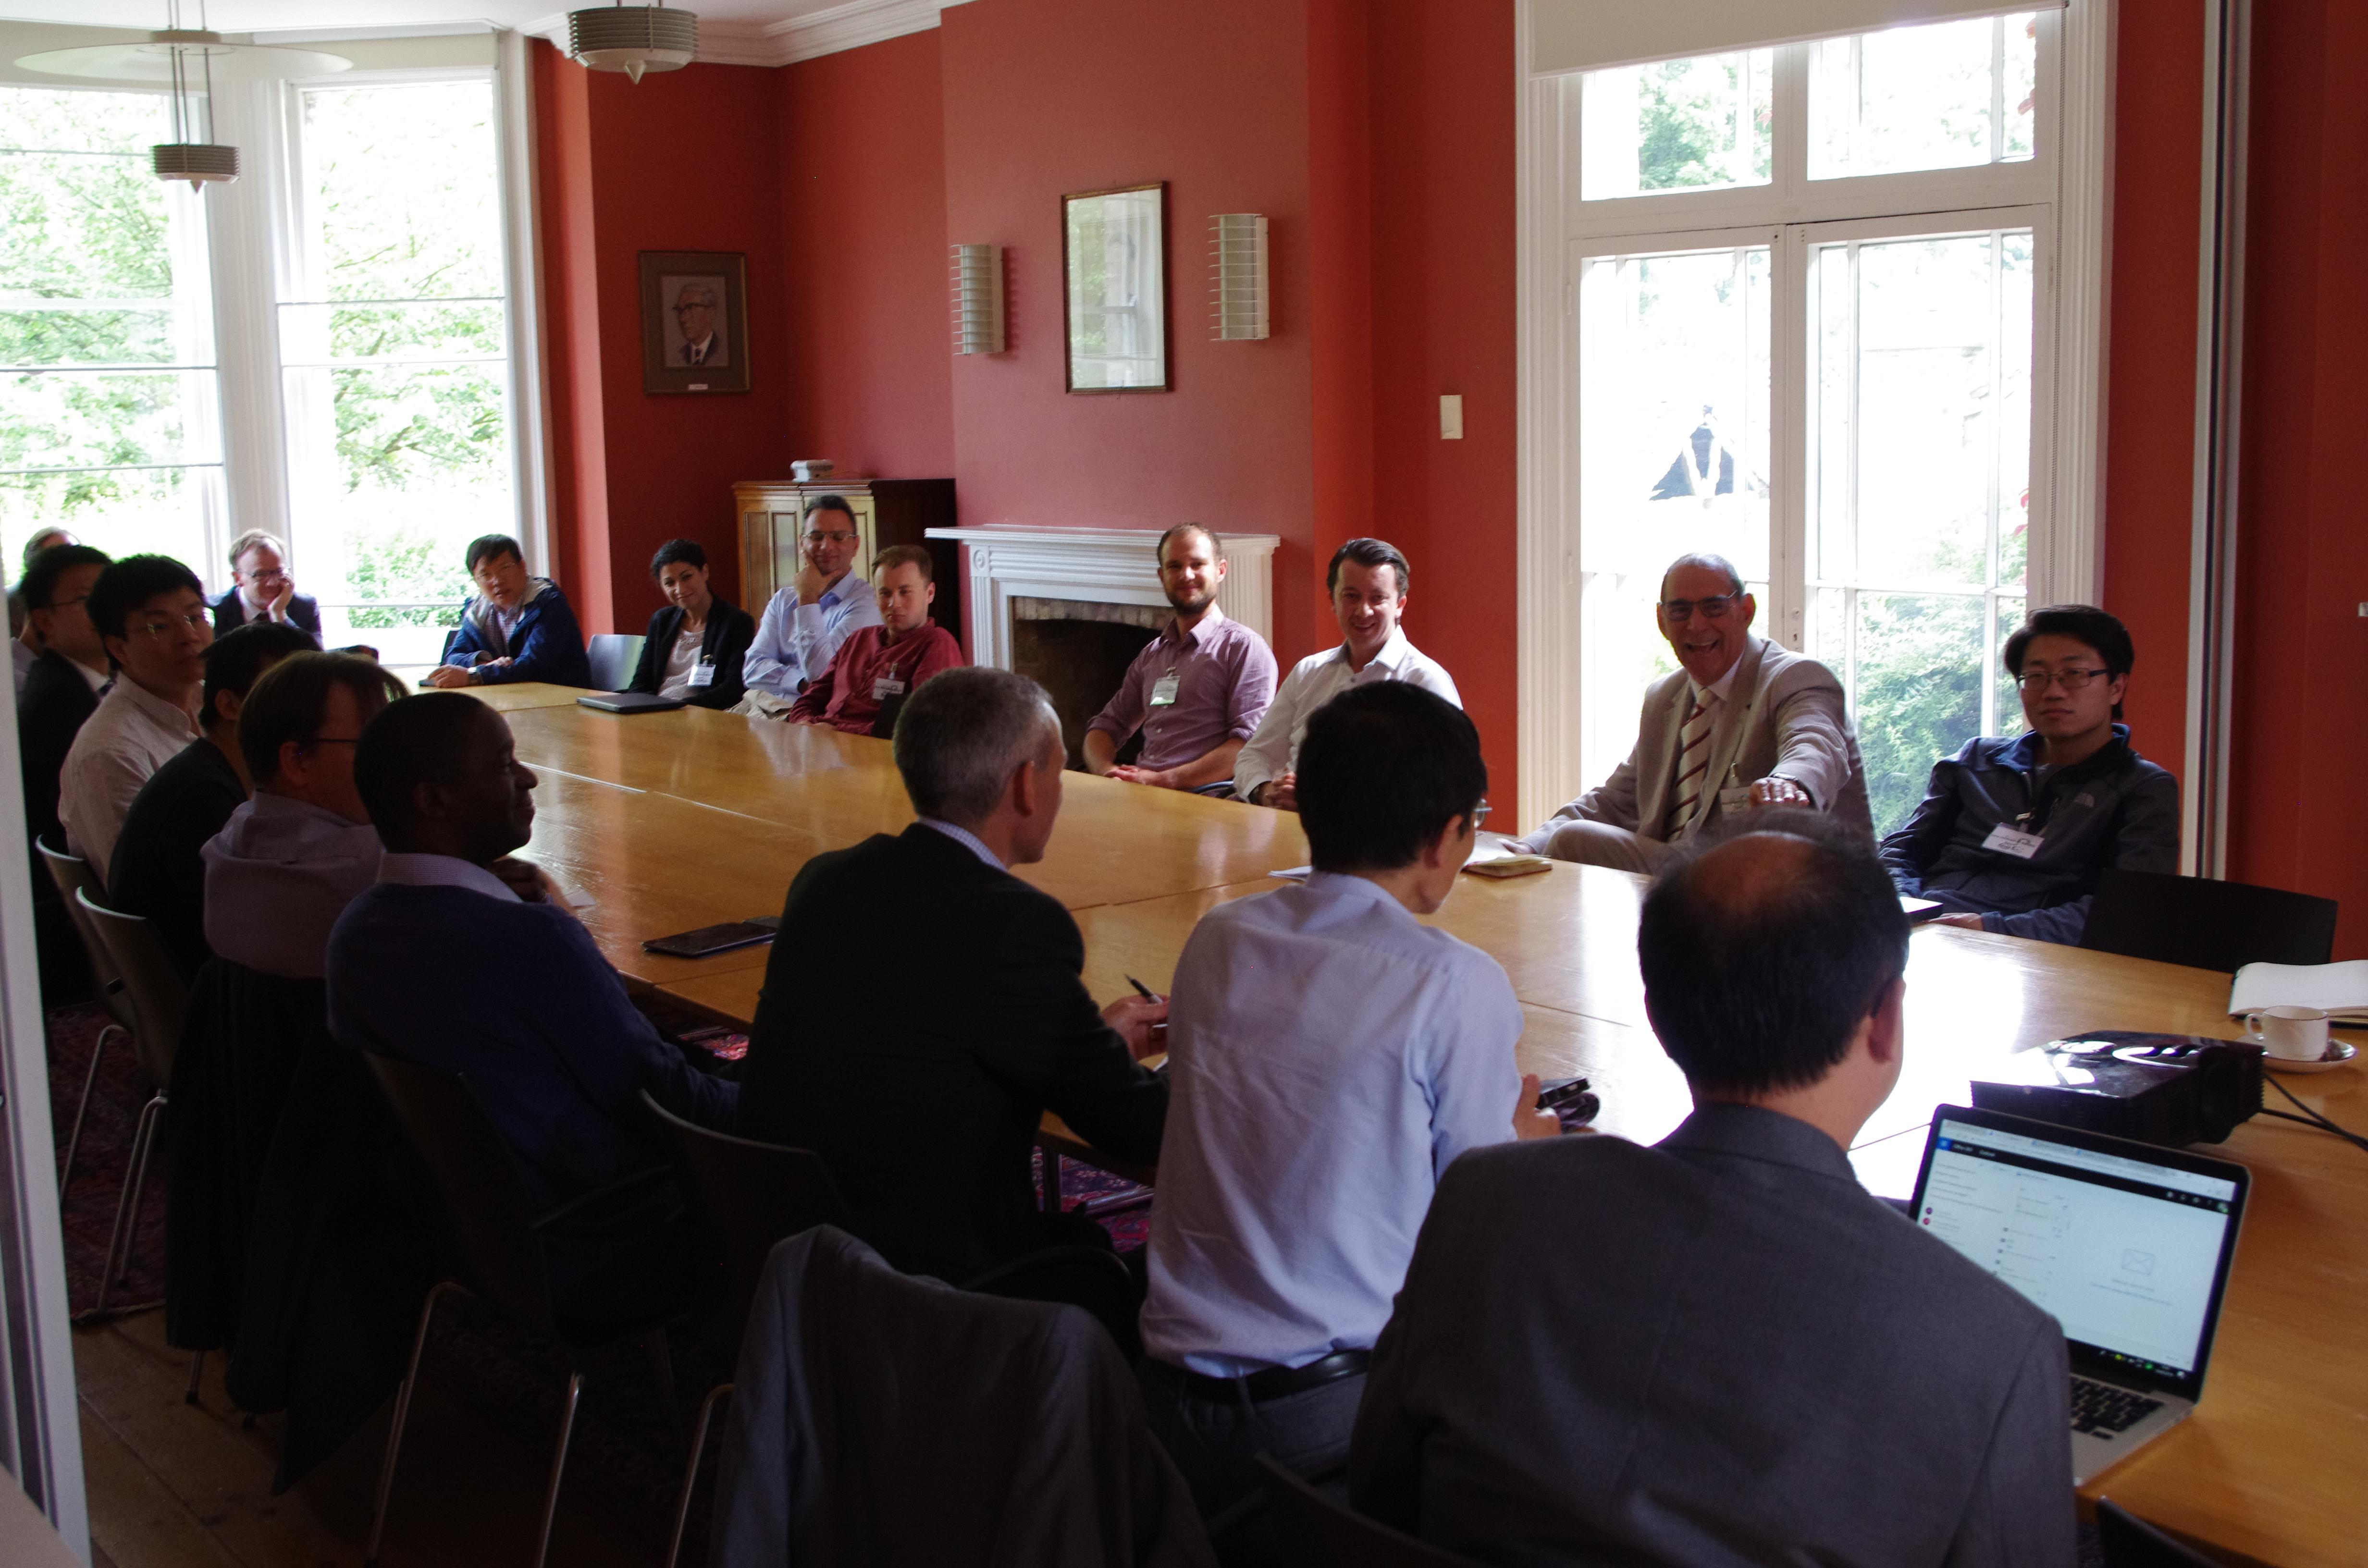 Professor Tavner chairs one of the round table discussions